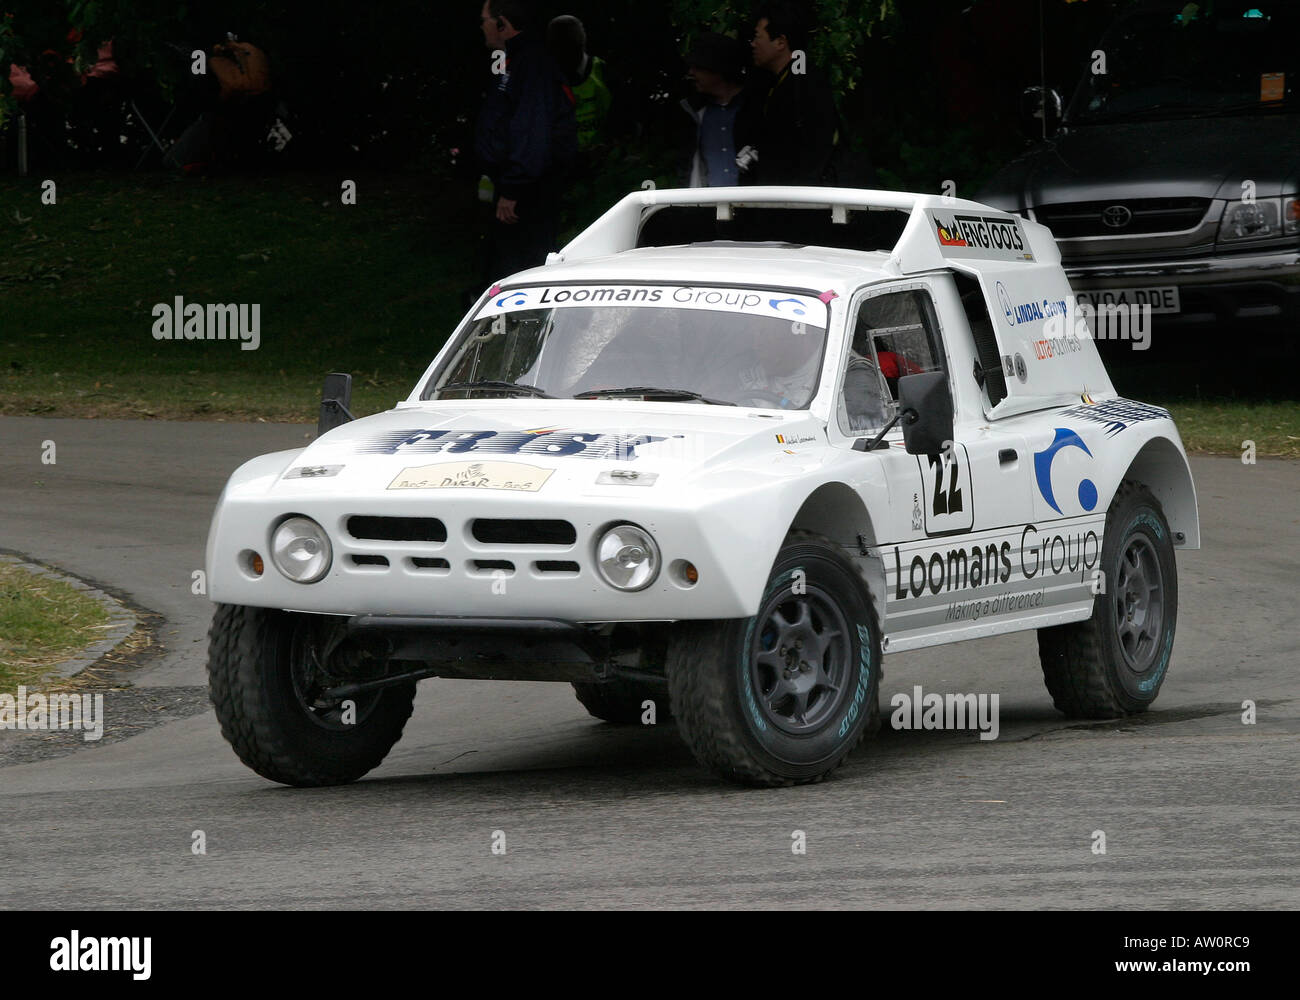 1986 MG Metro 6R4 at Goodwood Festival of Speed - Stock Image